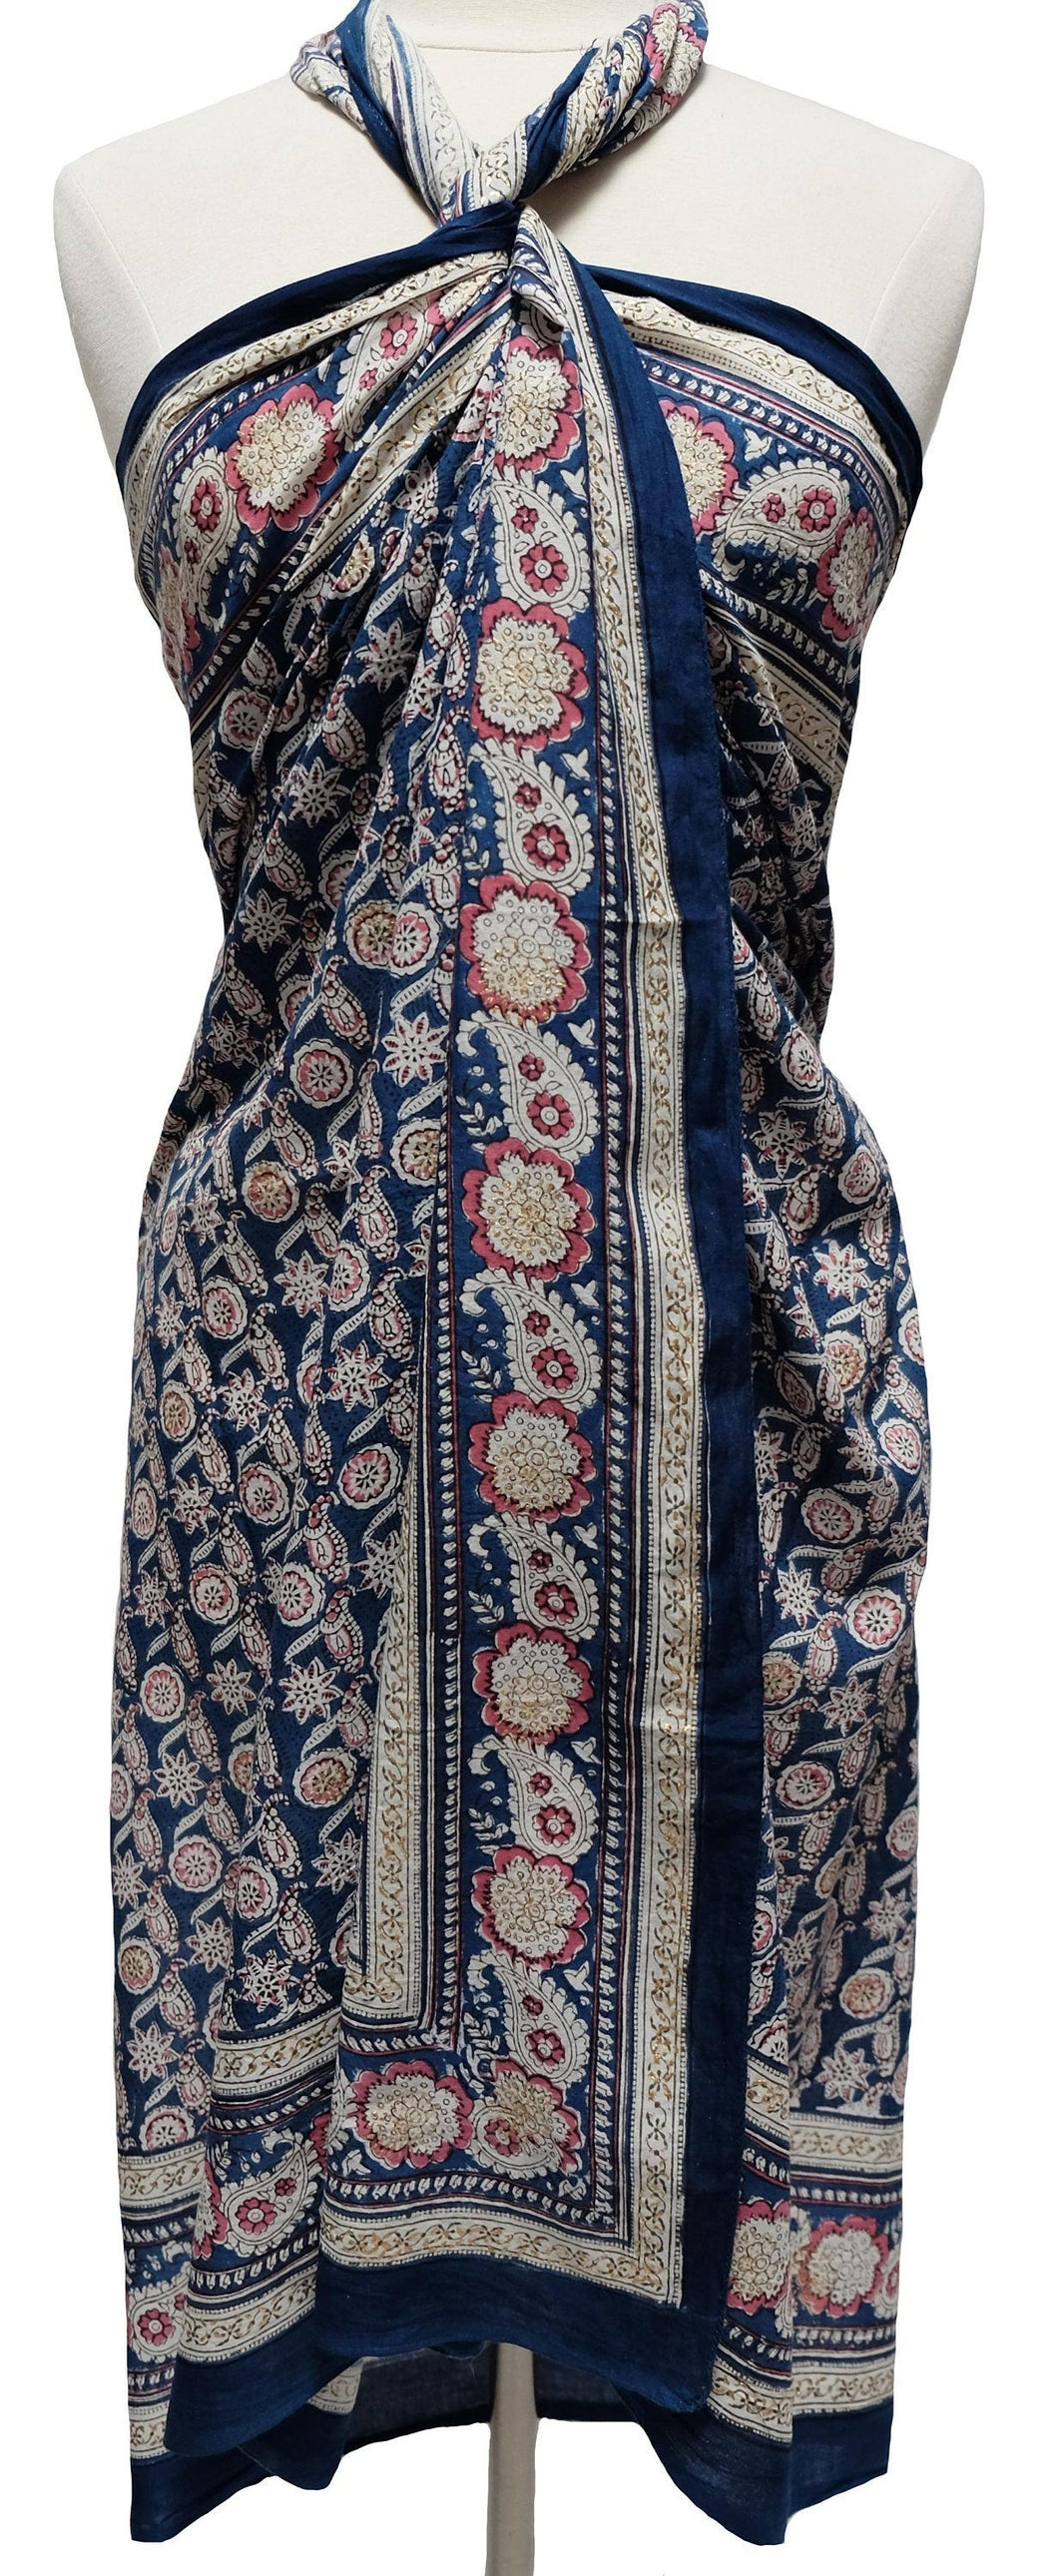 Hand Block Printed Sarong - Flower paisley - Cotton - Anokhi